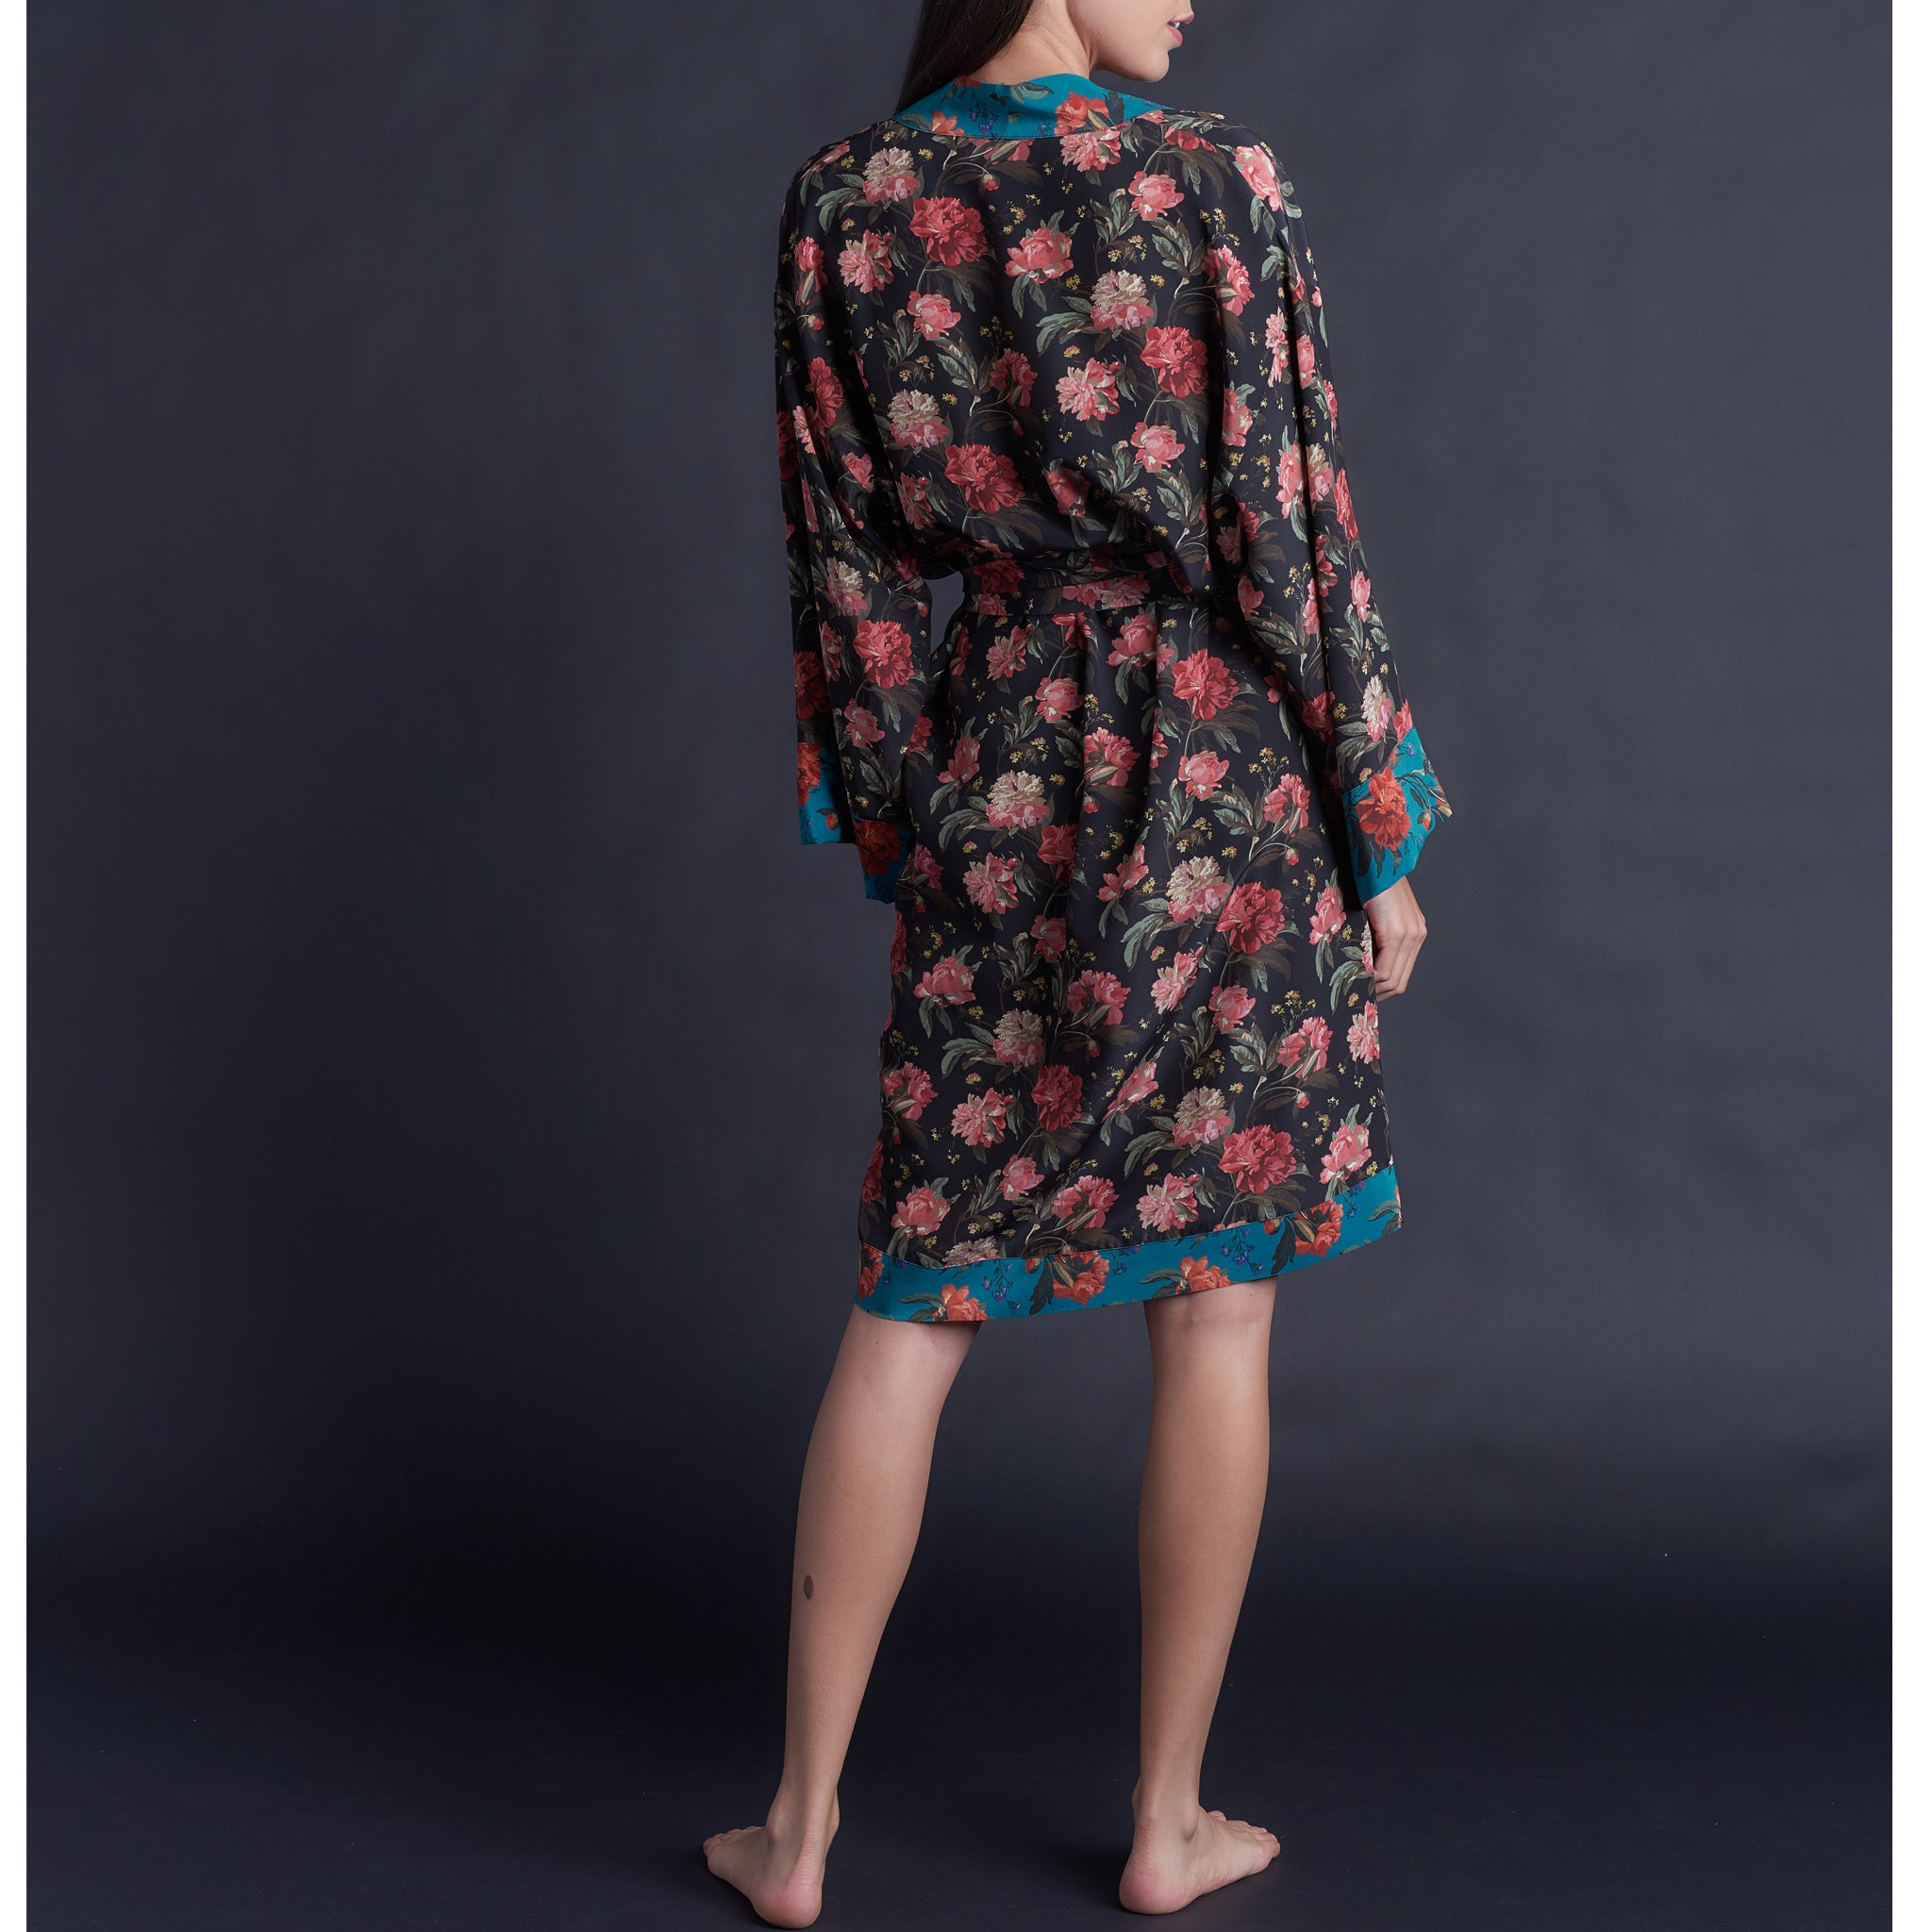 Selene Dressing Gown in Print Block Decadent Blooms Liberty Silk Crepe De Chine